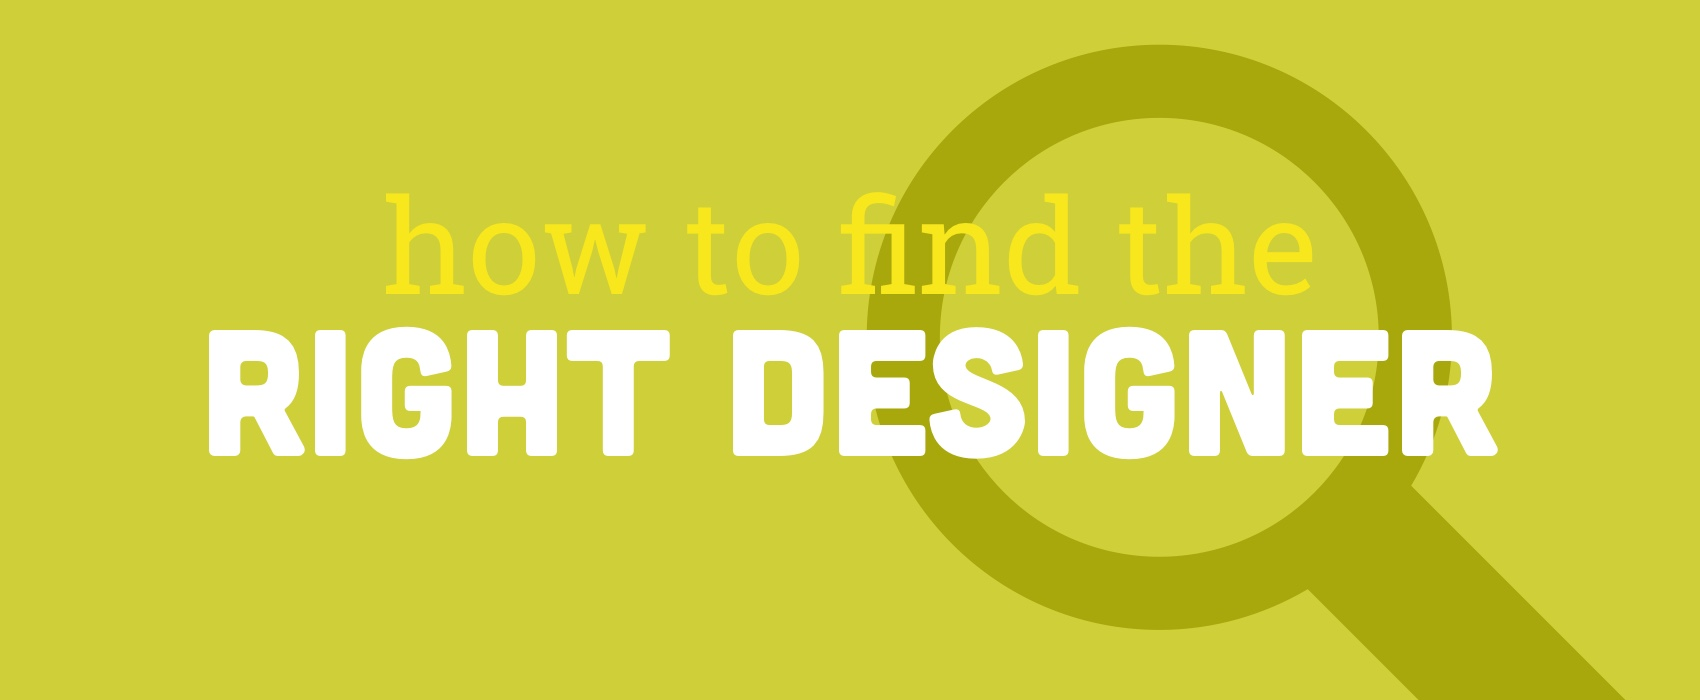 How to Find the Right Designer for Your Project